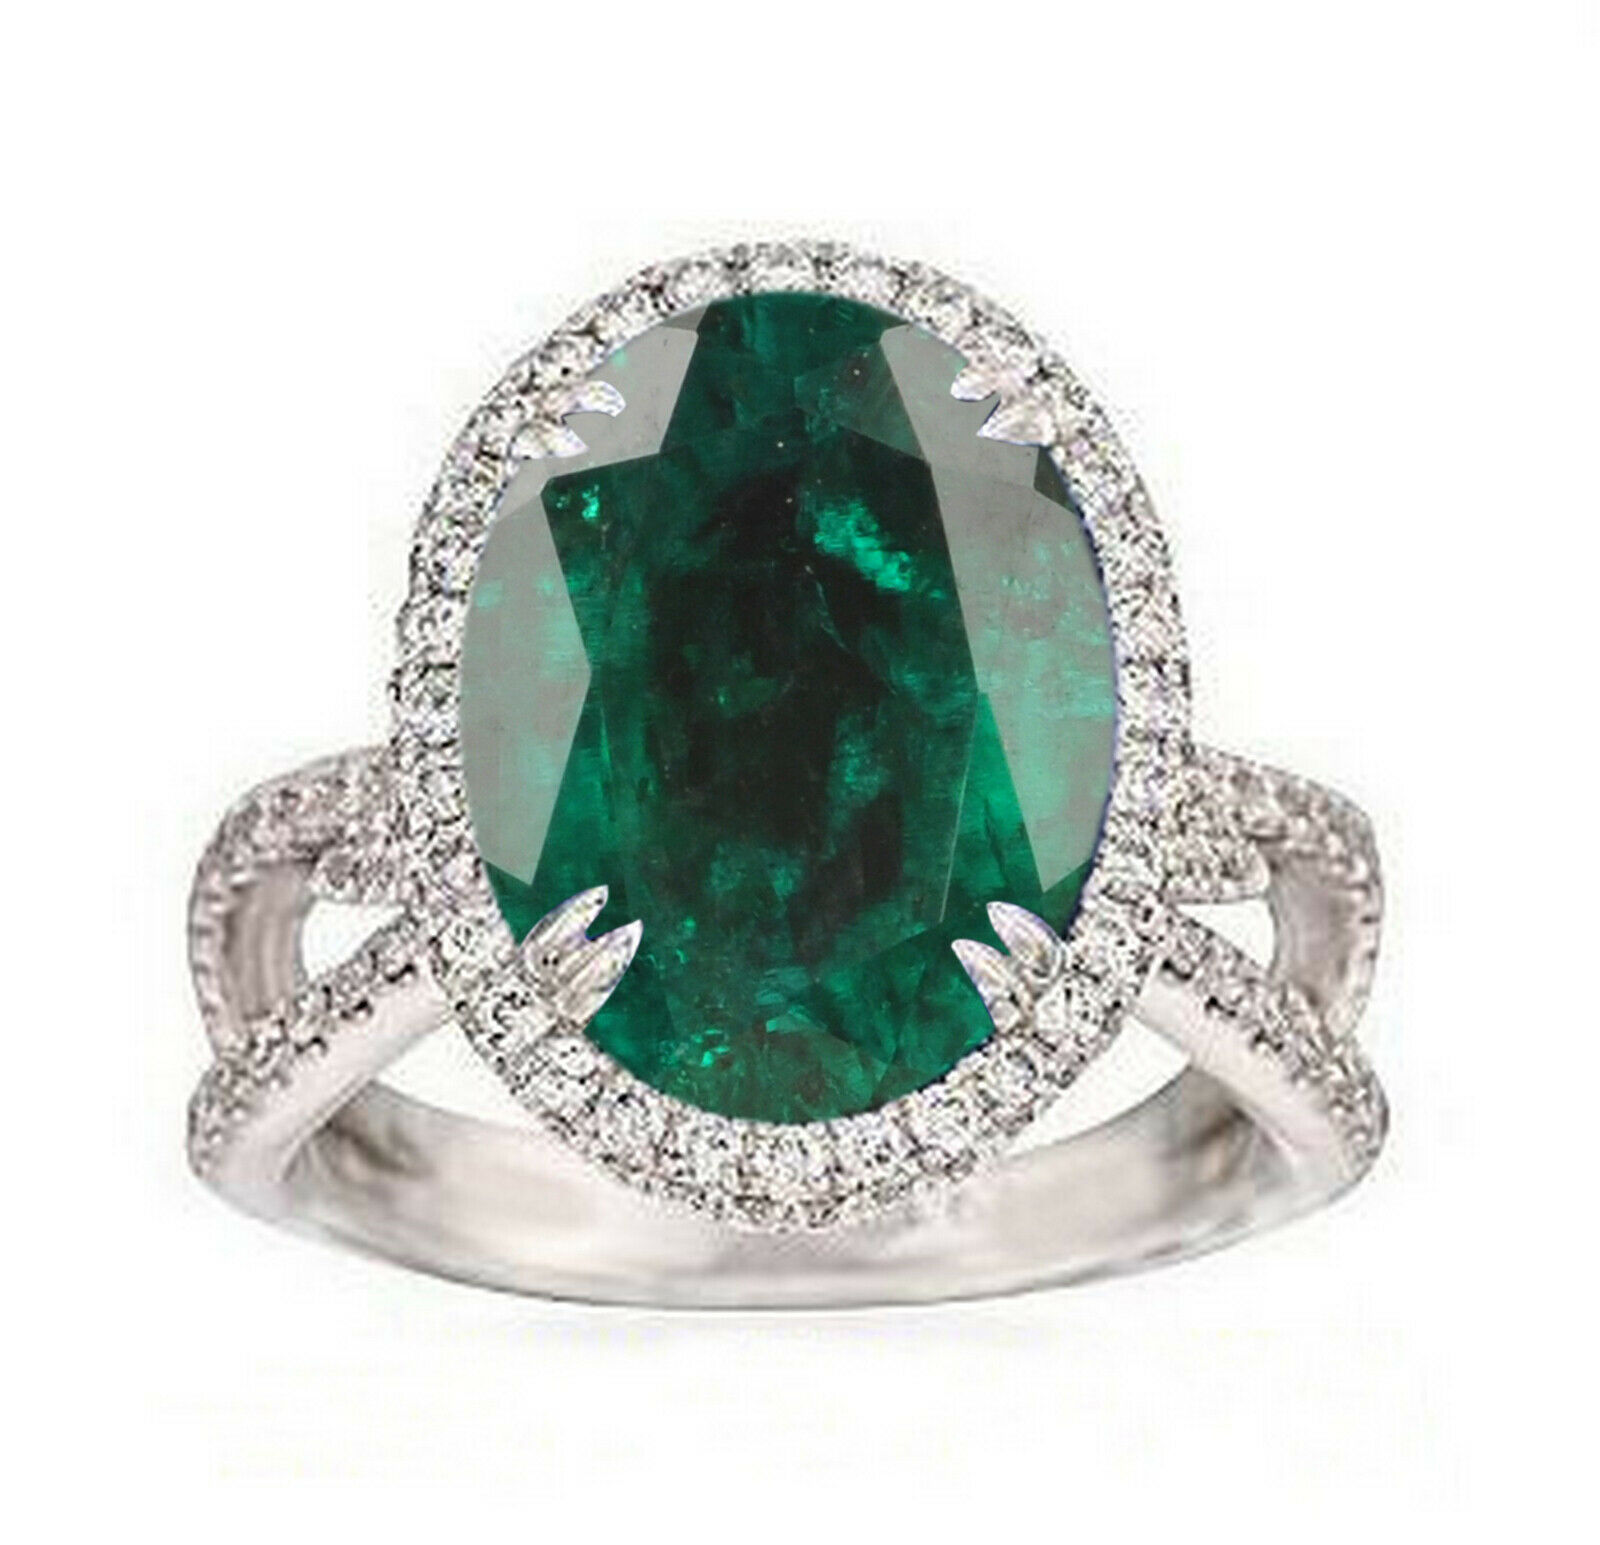 14KT White gold Natural Green Emerald 1.70Ct Oval Cut EGL Certified Diamond Ring